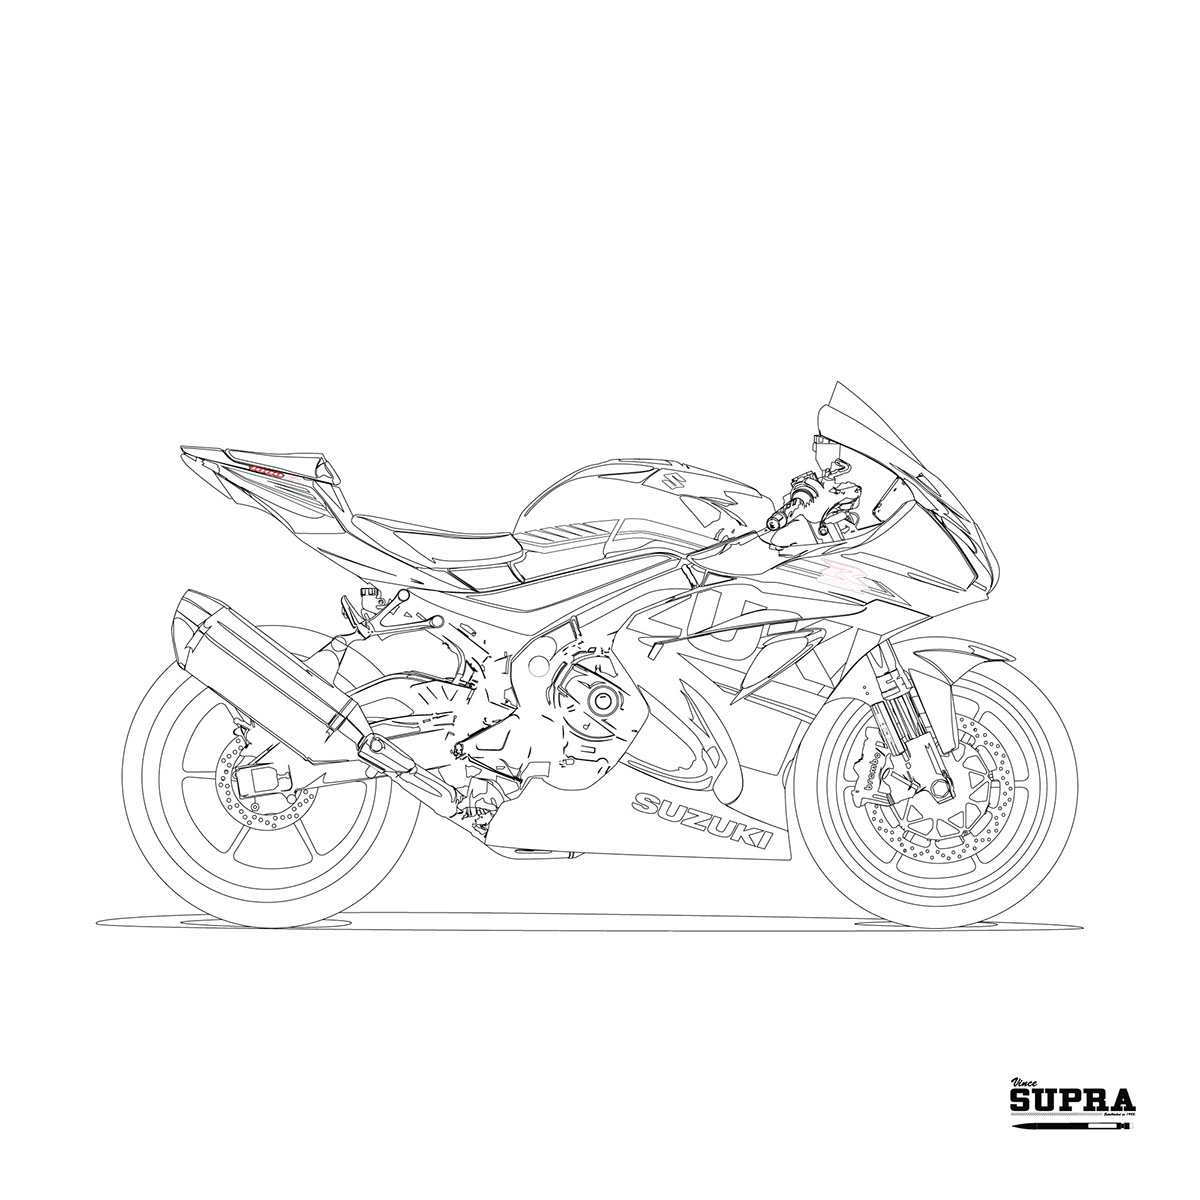 Suzuki GSXR 1000 2017 on Behance